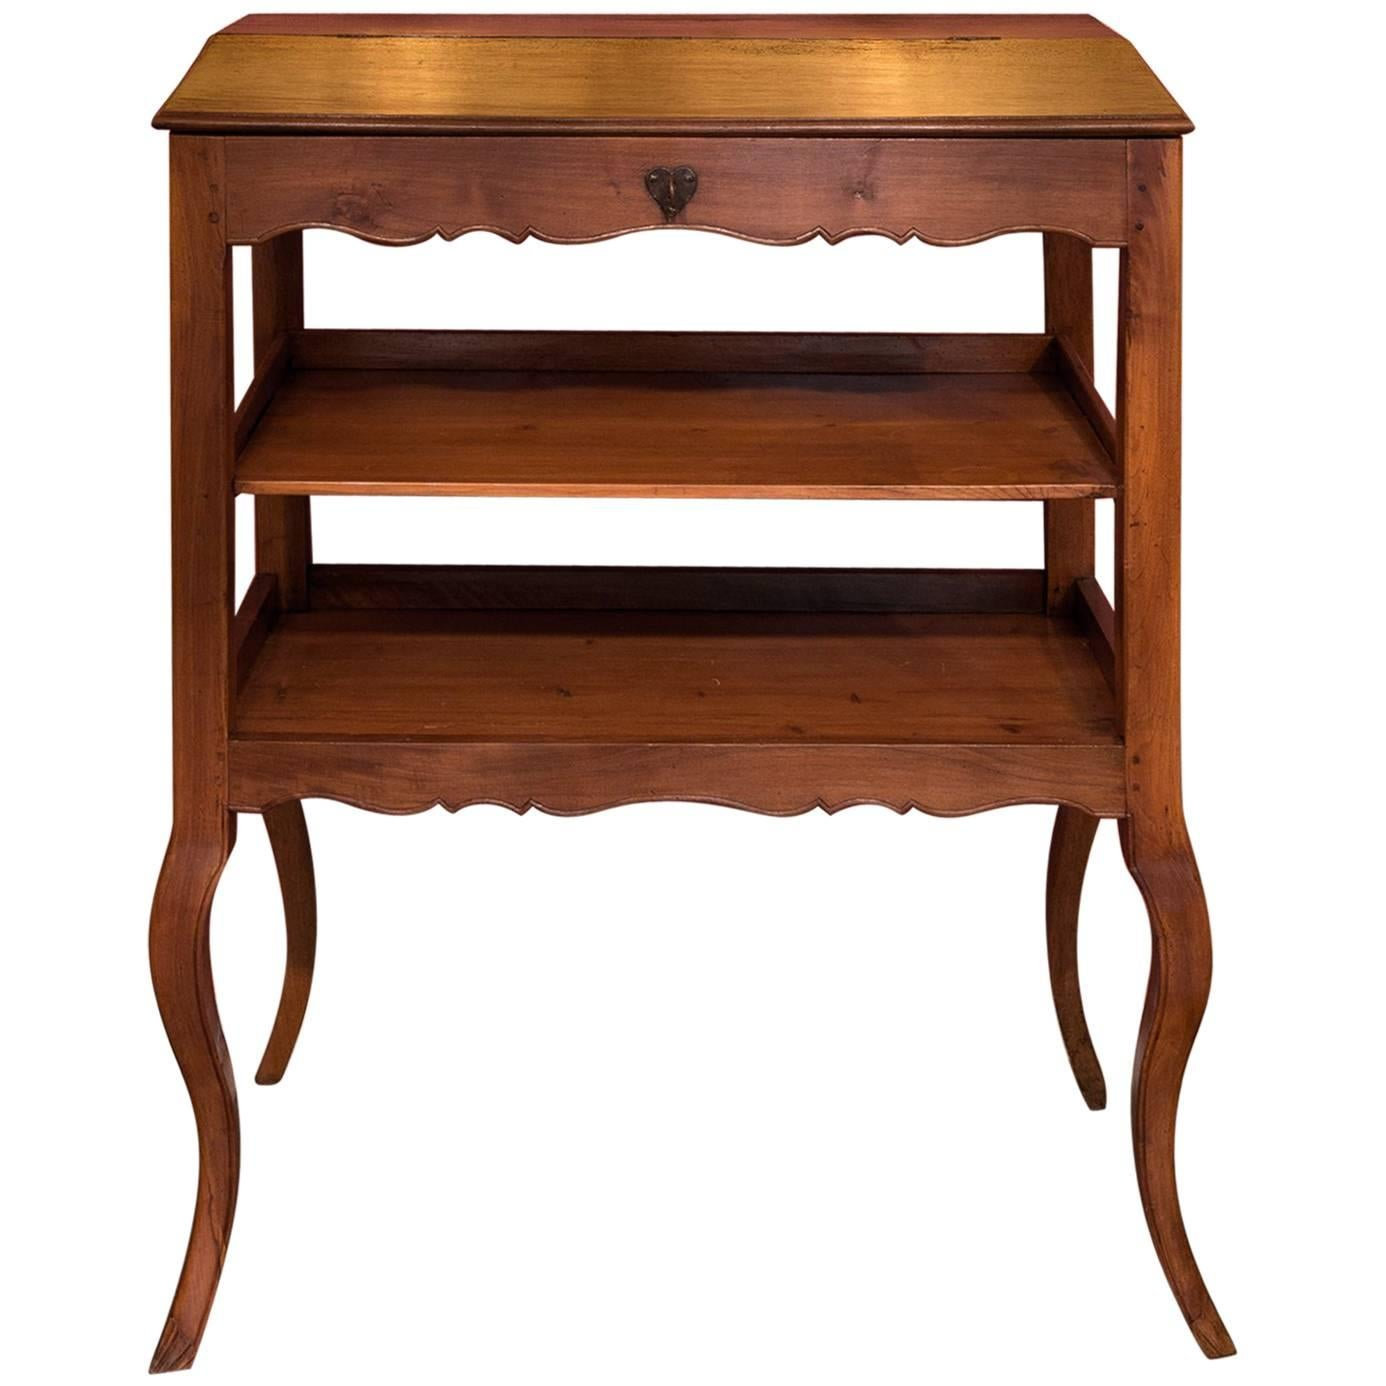 Mid 18th Century Provencal Notarial Office Furniture In Solid Walnut, Circa  1750 For Sale